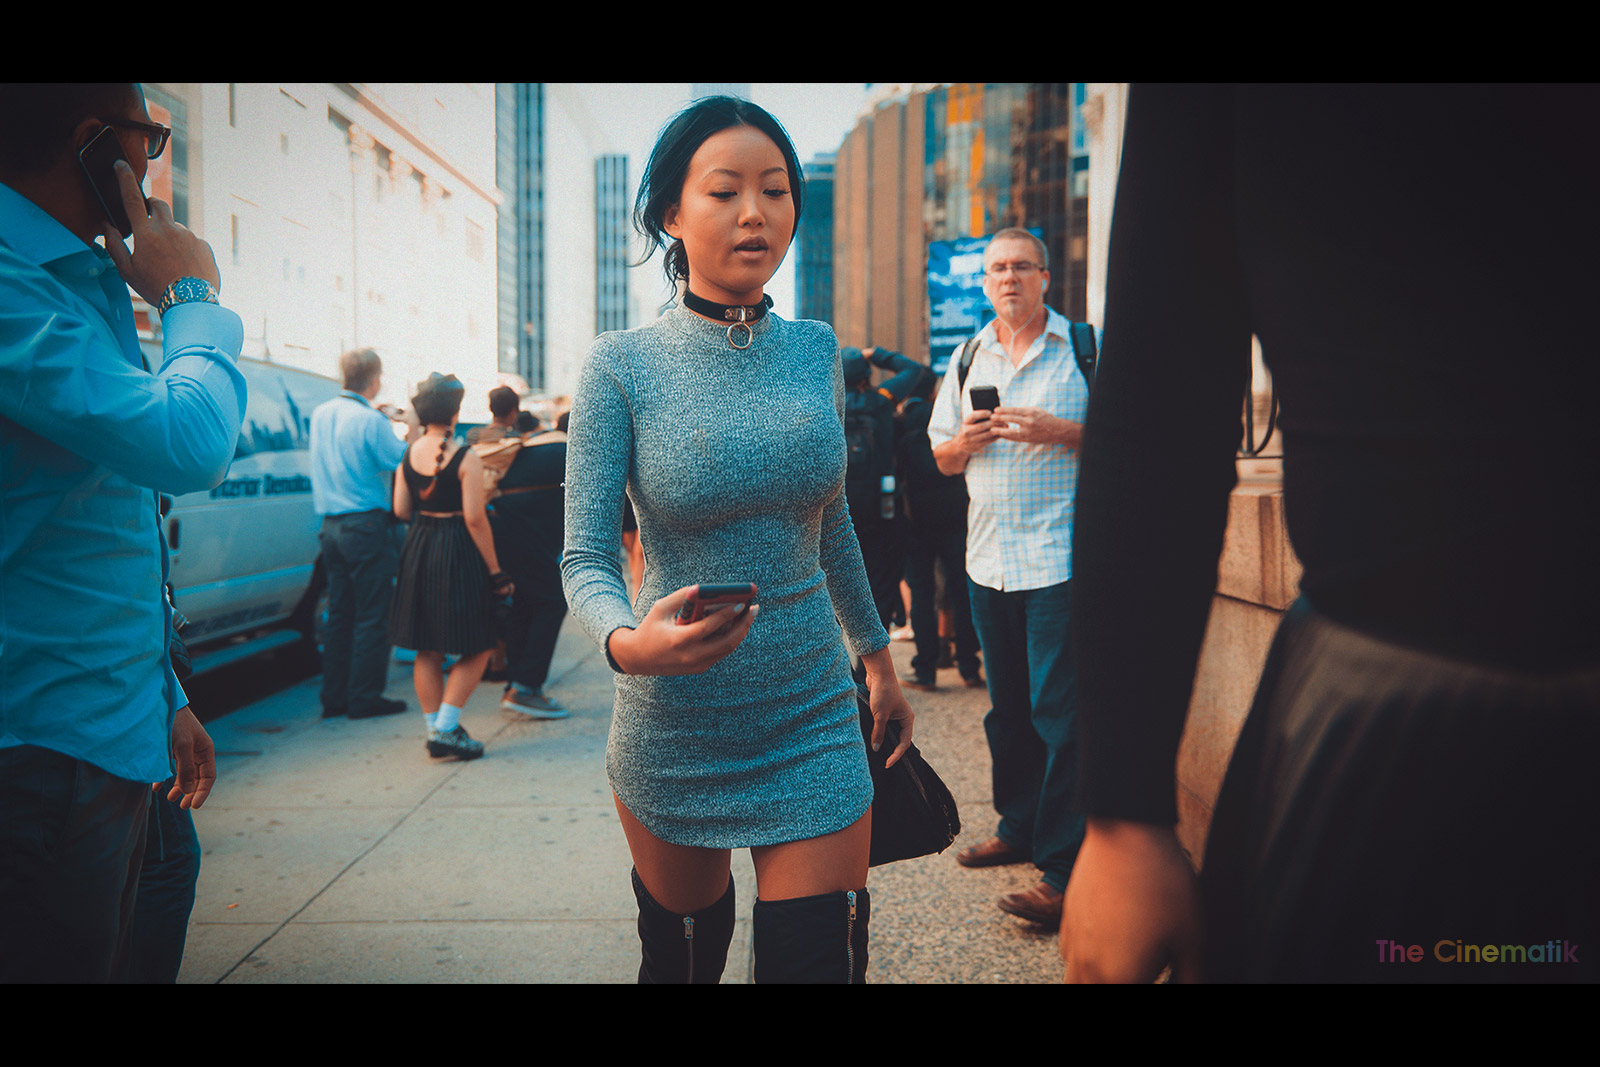 Glamorous sexy asian female guest cinematic photograph at New York Fashion Week by Kamal Lahmadi